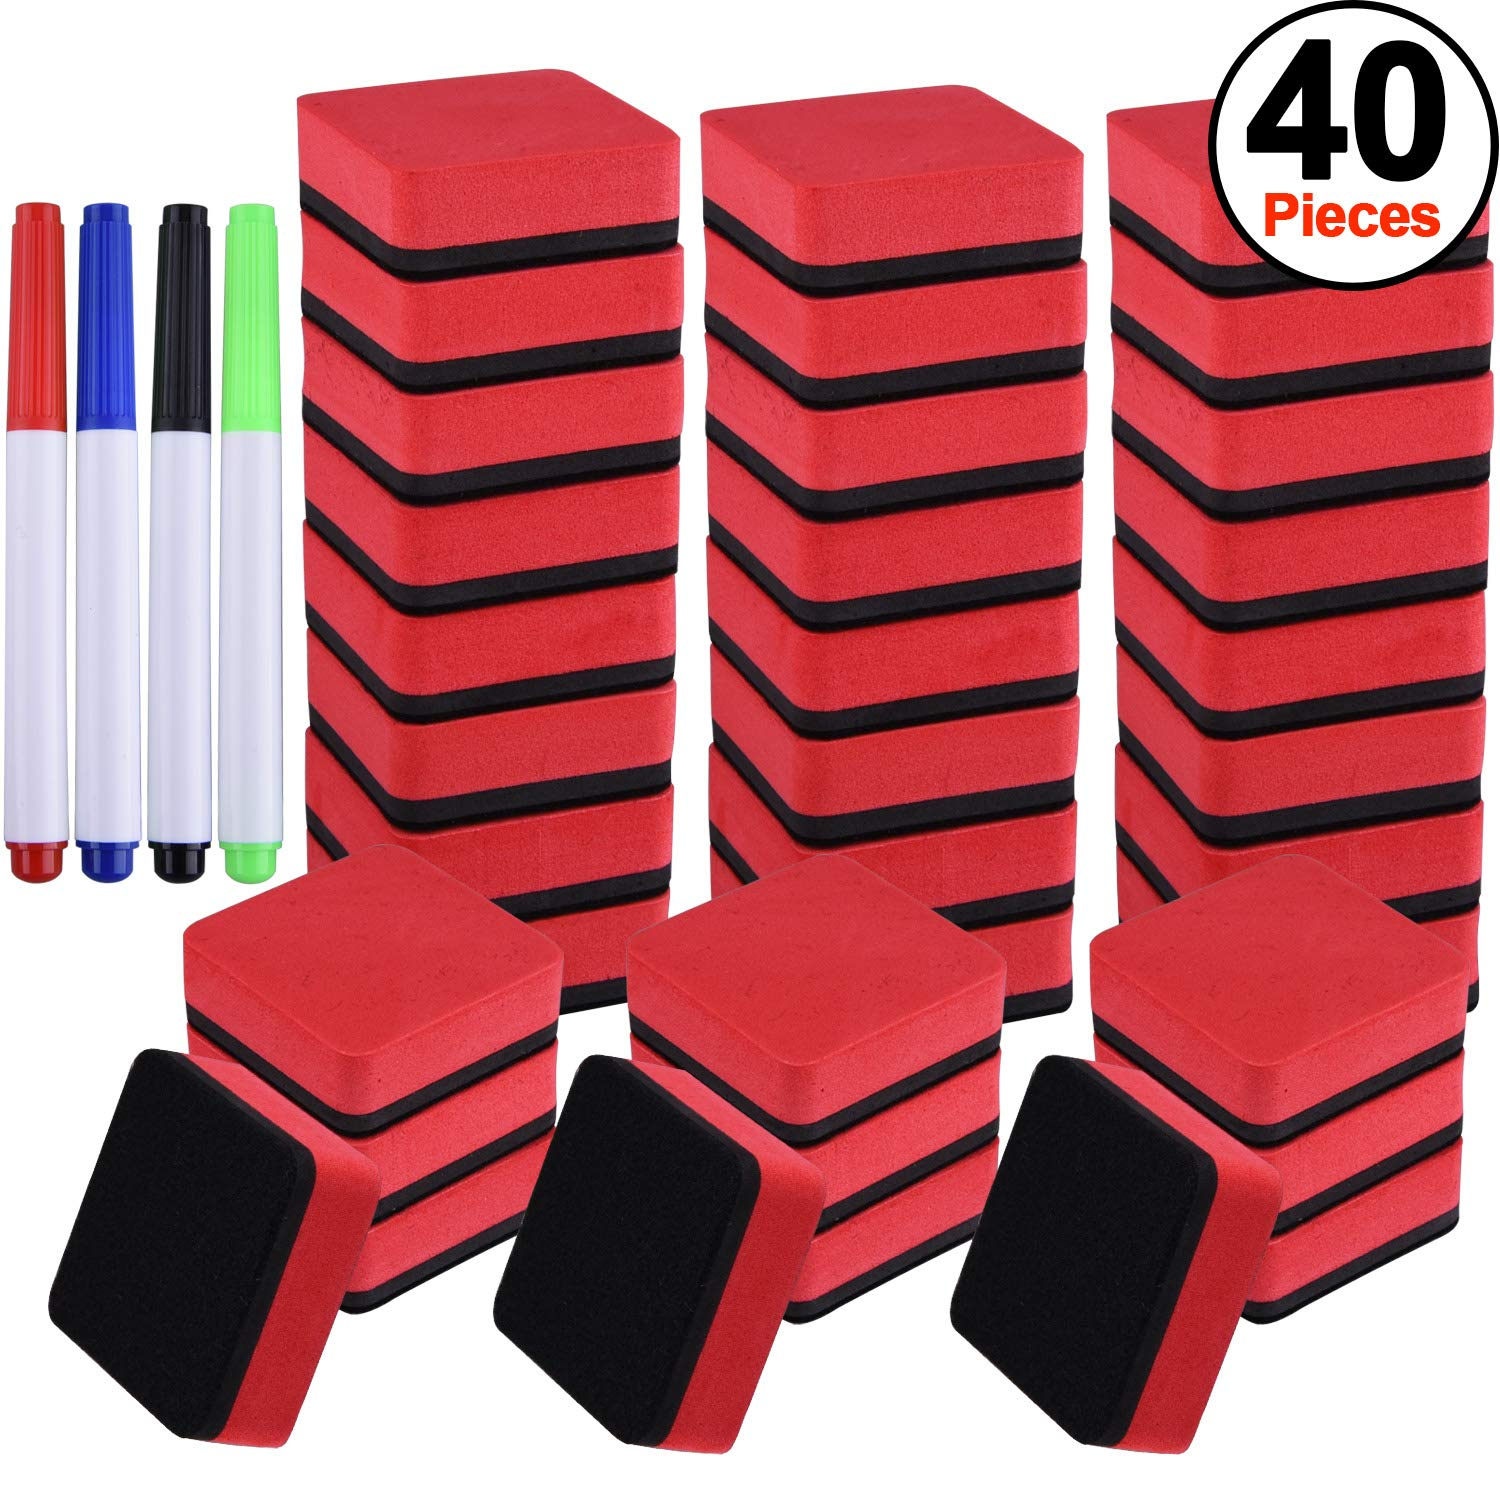 SIQUK 36 Packs Whiteboard Eraser Magnetic White Board Dry Eraser Red Chalkboard Cleansers Wiper(1.97 x 1.97 Inches) with 4 Pieces Dry Erase Whiteboard Markers for Classroom Offices